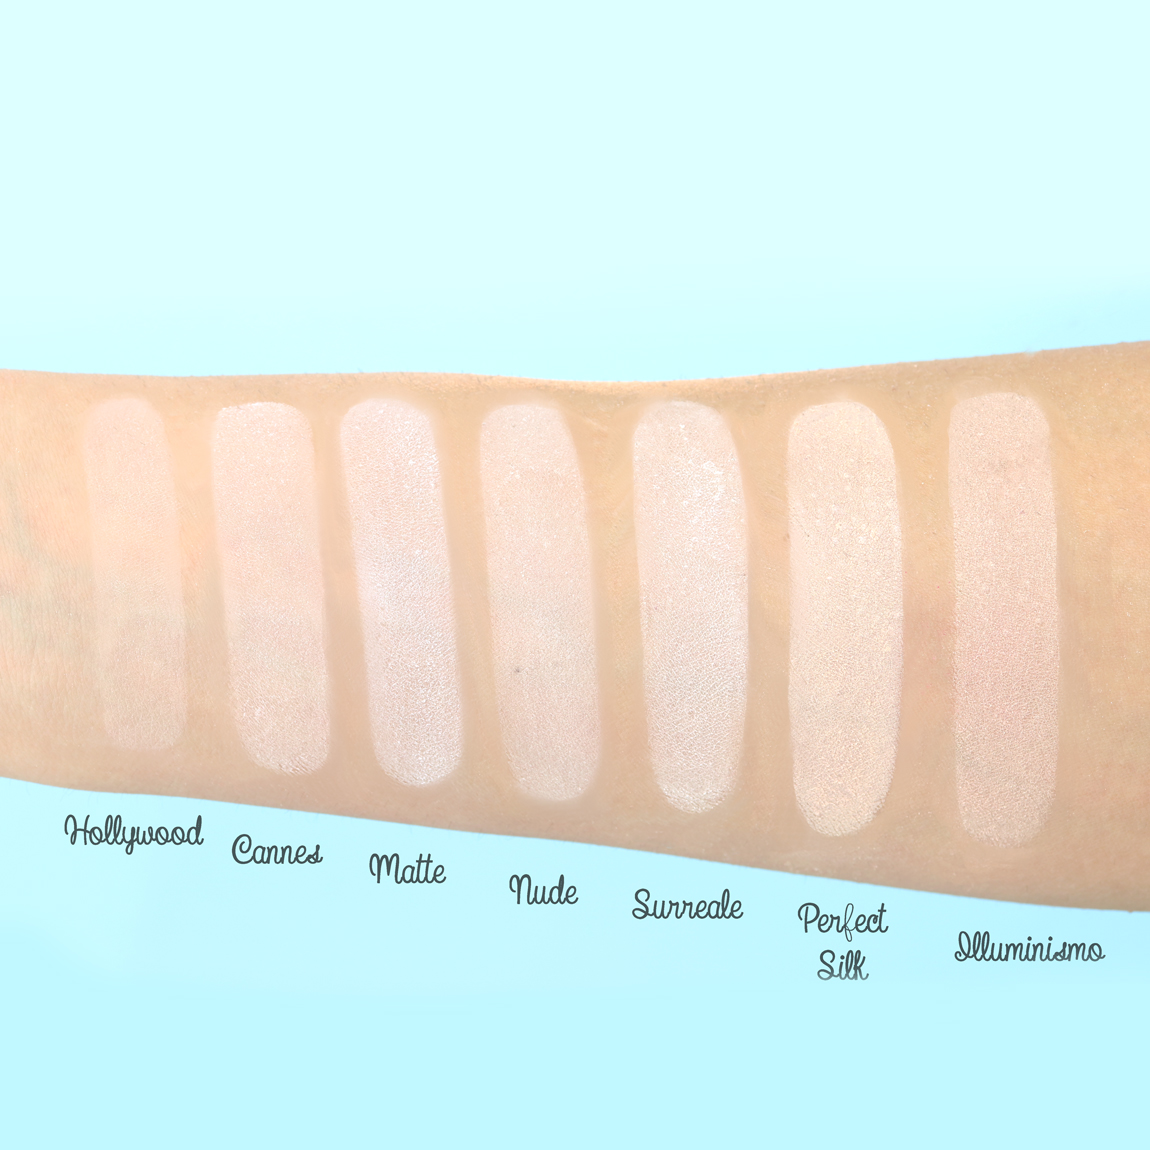 Swatch of mineral powders Neve Cosmetics